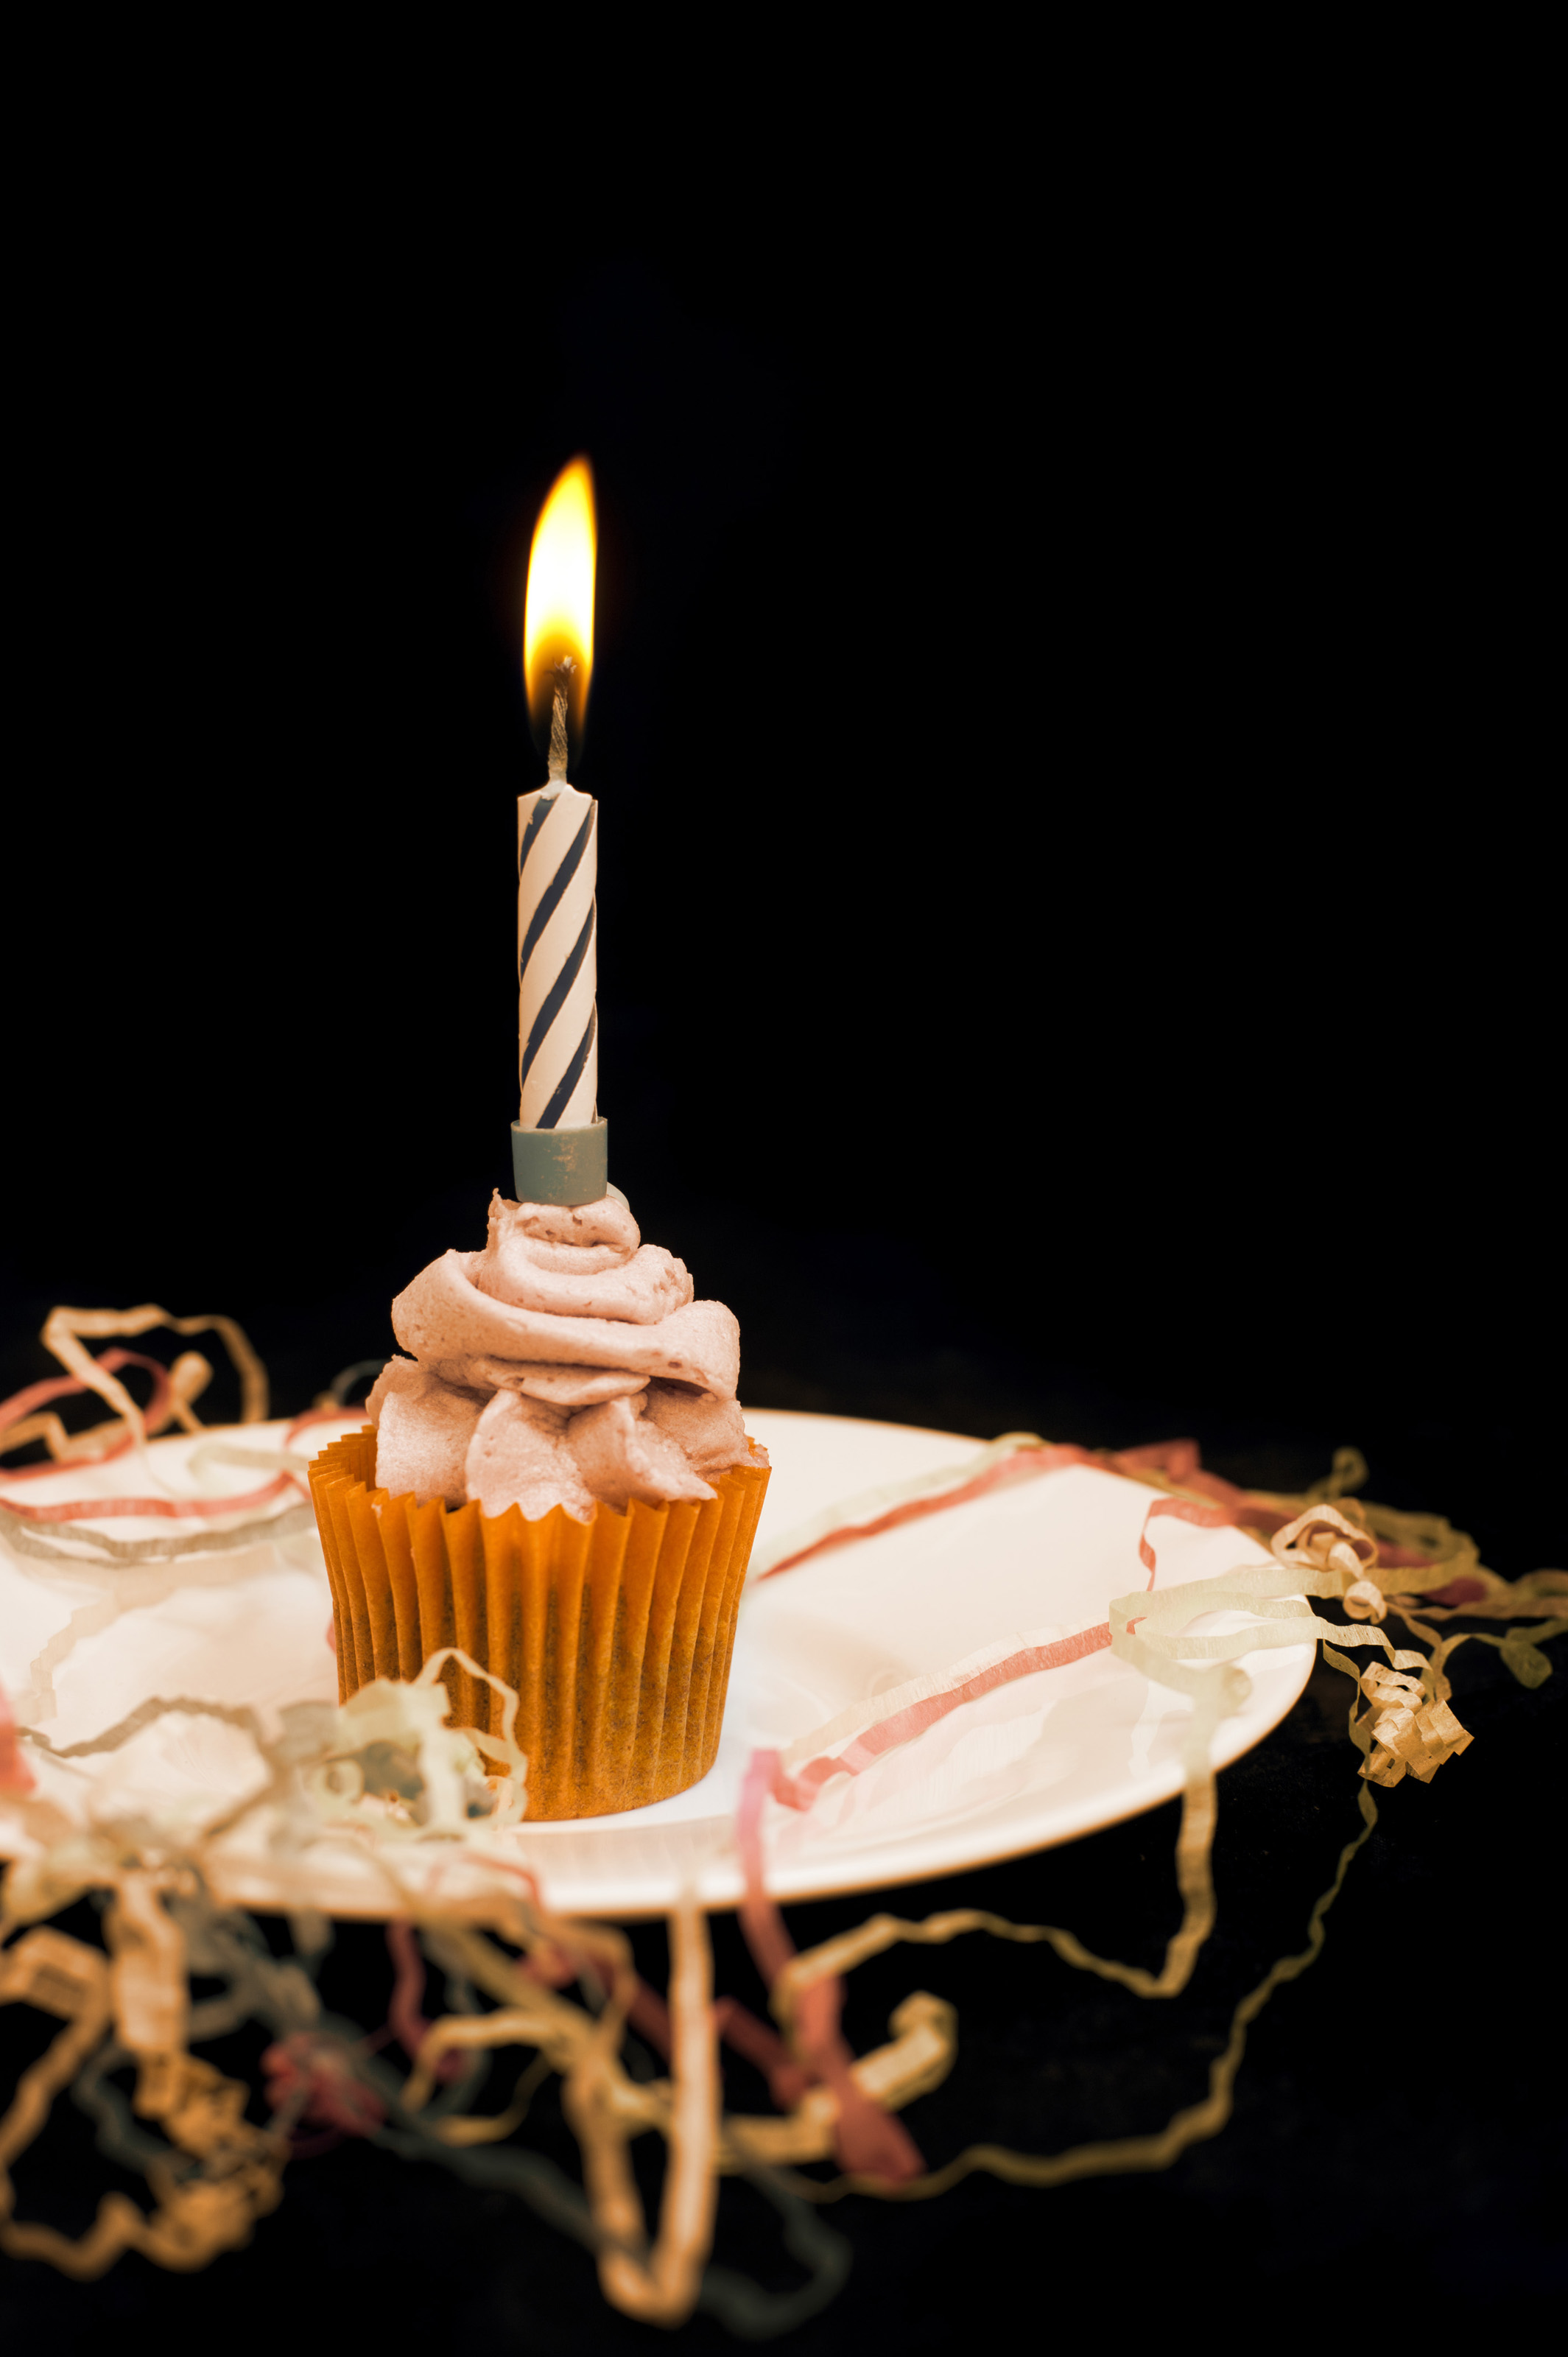 Burning candle on an orange cupcake-6076 | Stockarch Free Stock Photos